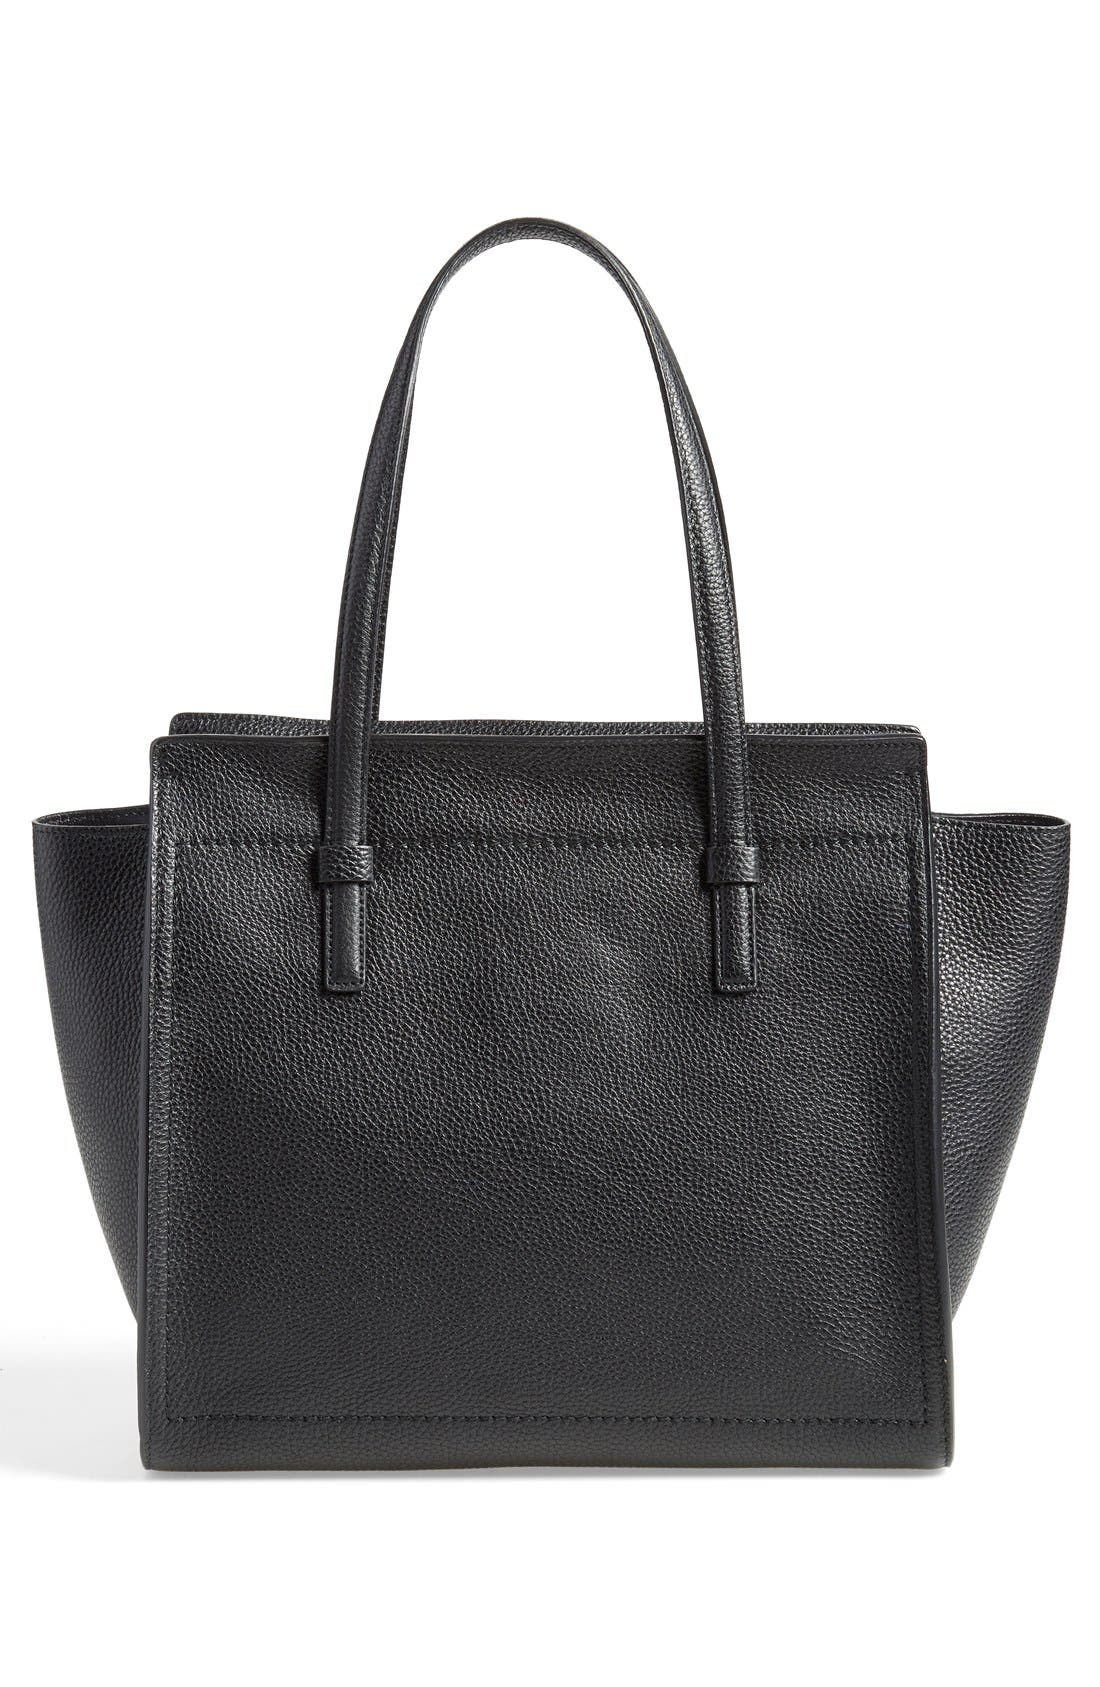 Medium Amy Calfskin Leather Tote,                             Alternate thumbnail 5, color,                             001